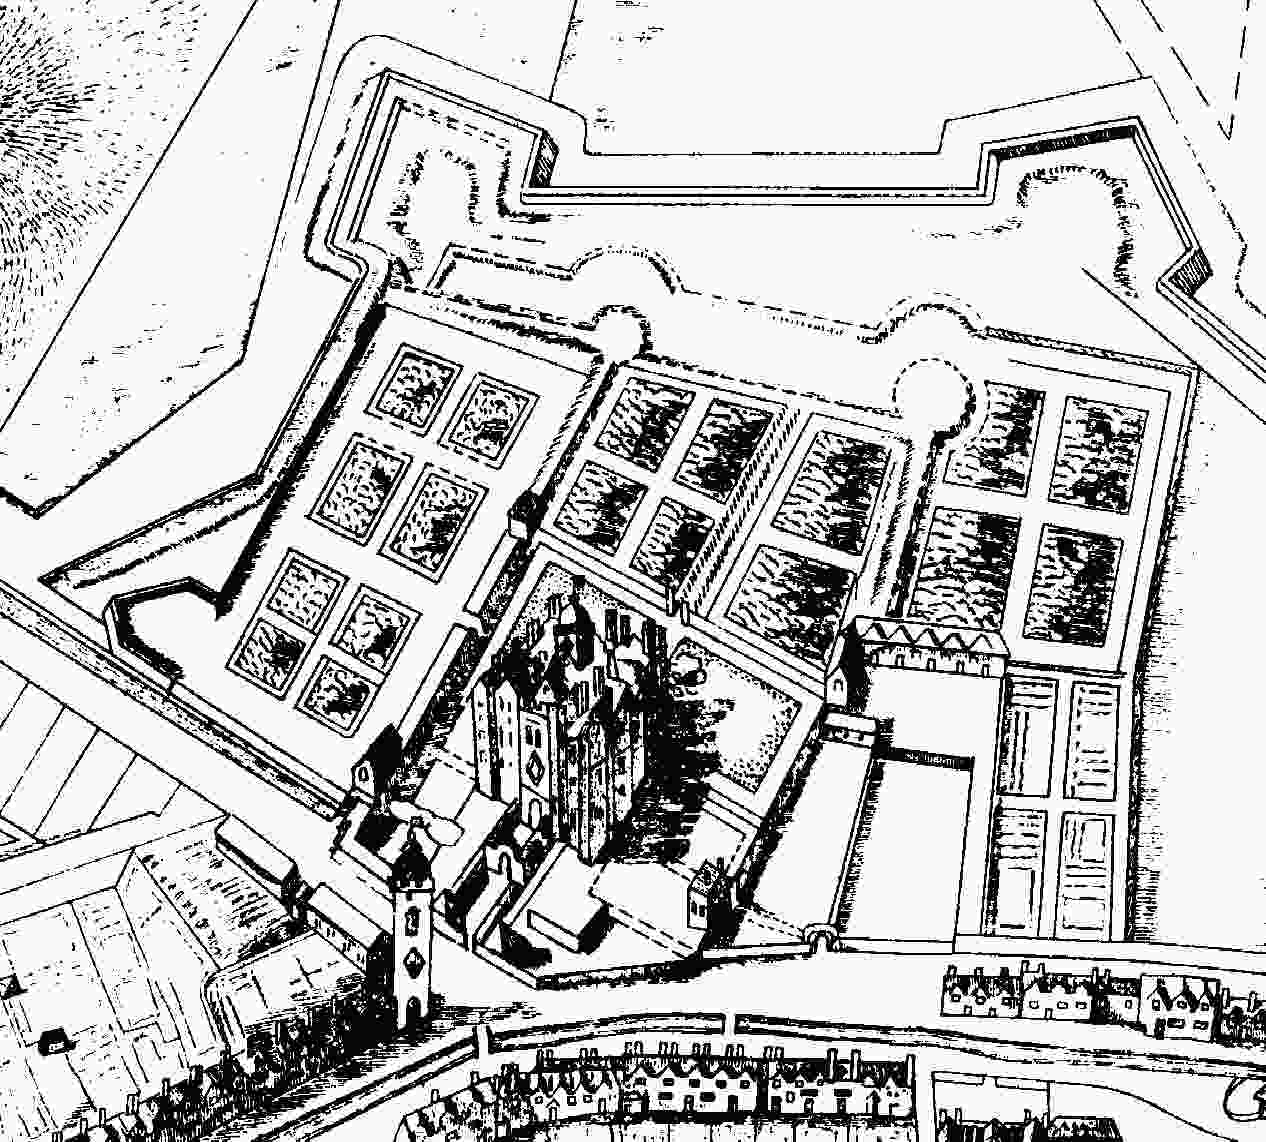 Belfast Castle from Thomas Phillips' map, 1685